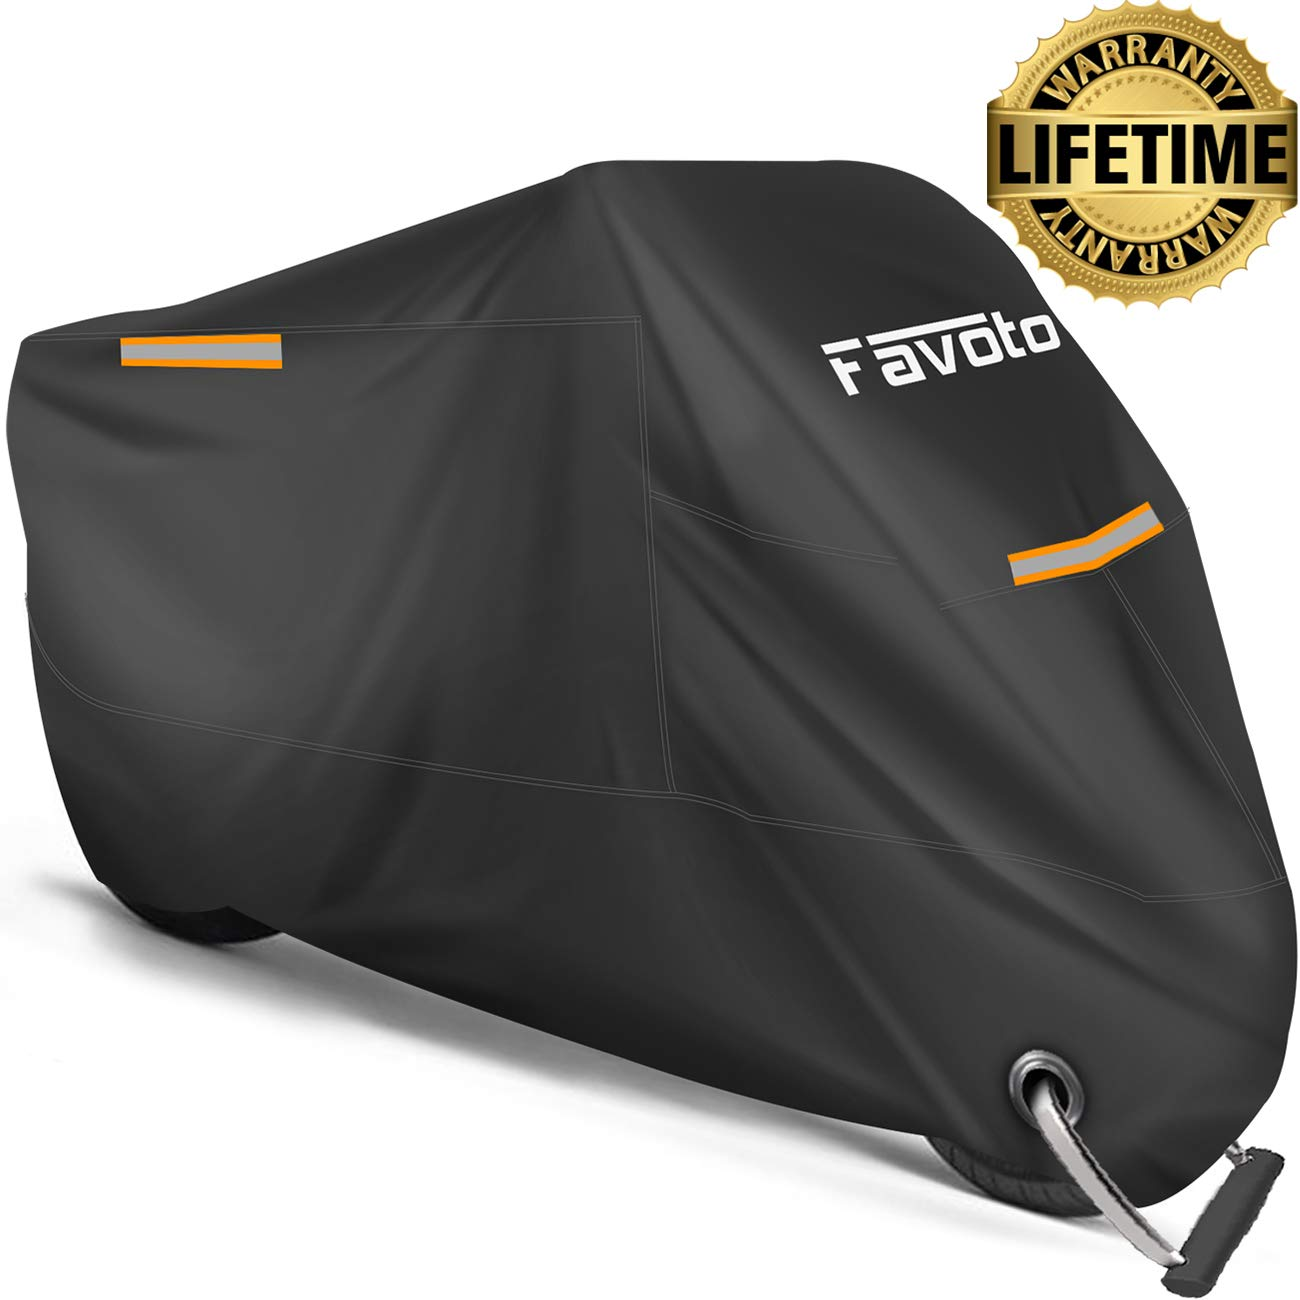 """Favoto Motorcycle Cover All Season Universal Weather Premium Quality Waterproof Sun Outdoor Protection Durable Reflective Stripe with Lock-Holes & Storage Bag Fits up to 104"""" Motorcycle Vehicle Cover"""